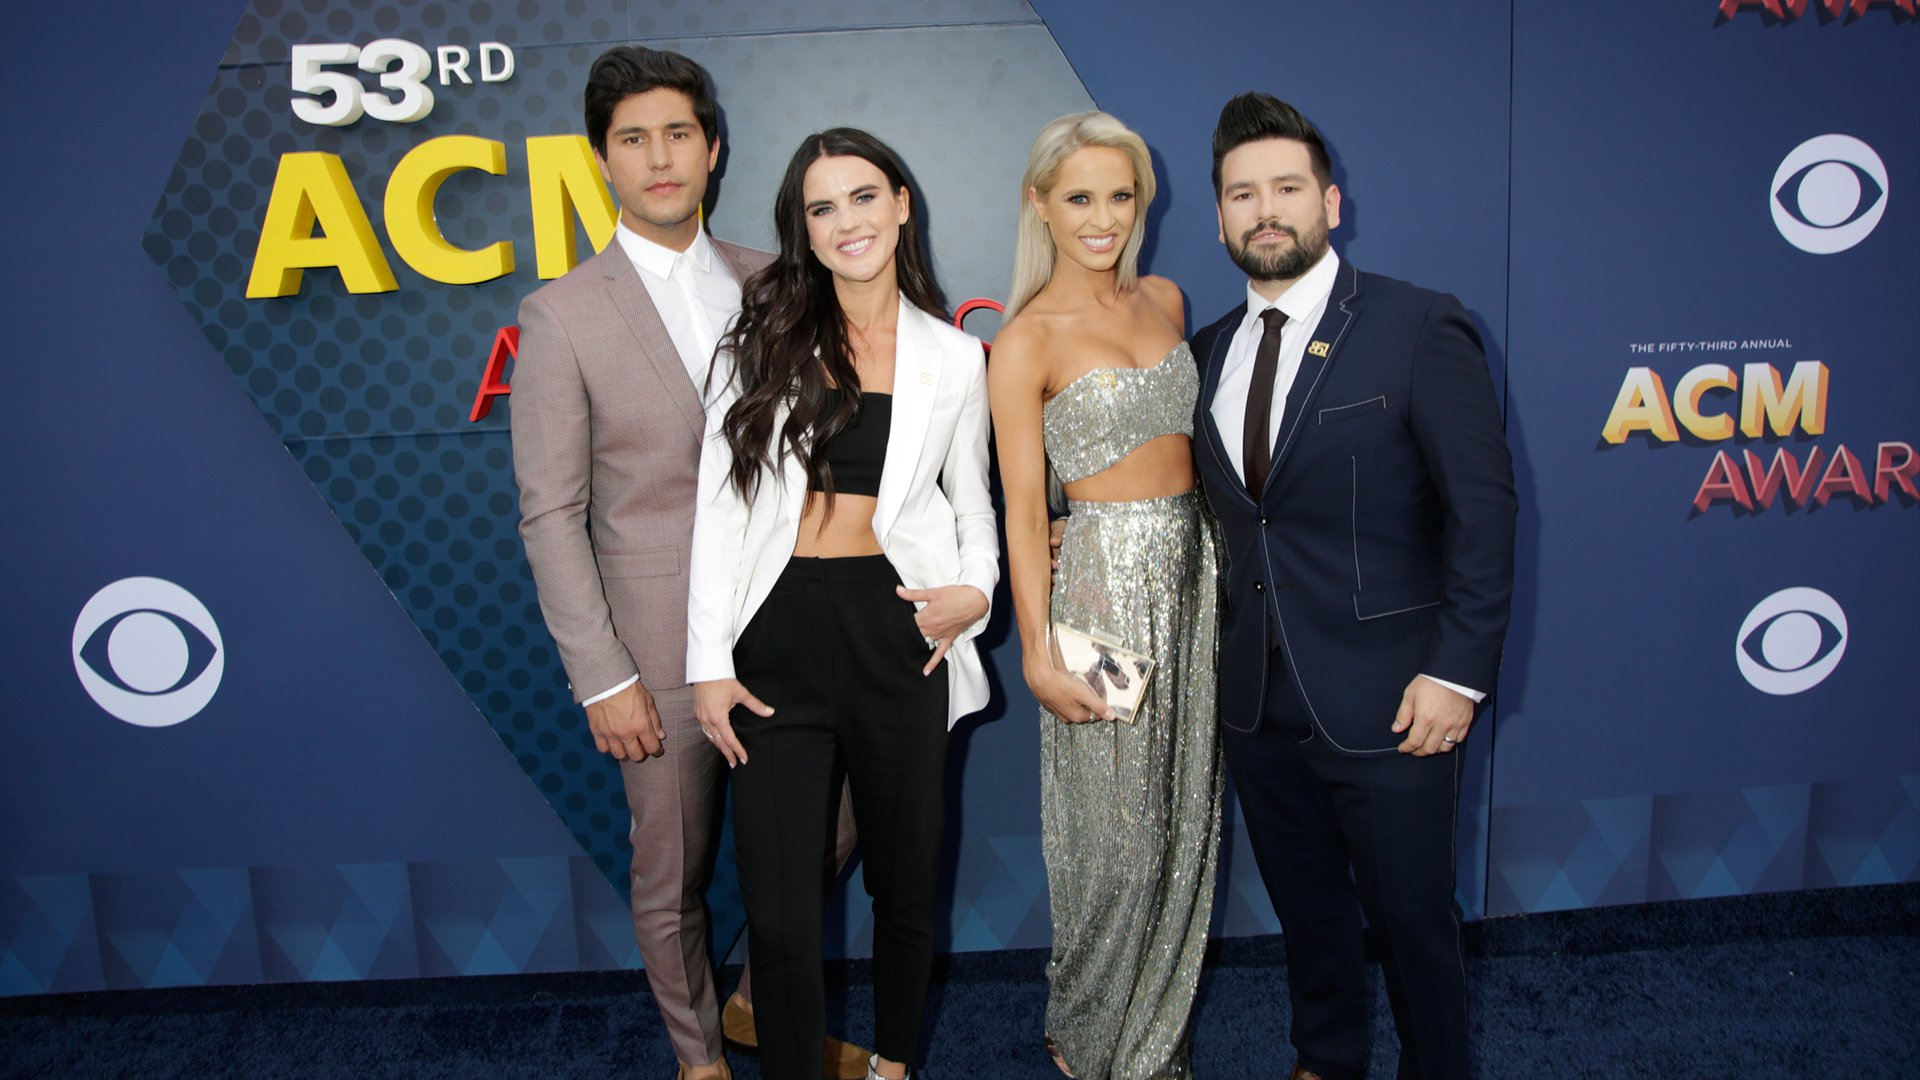 Dan + Shay pose with their beautiful dates before performing